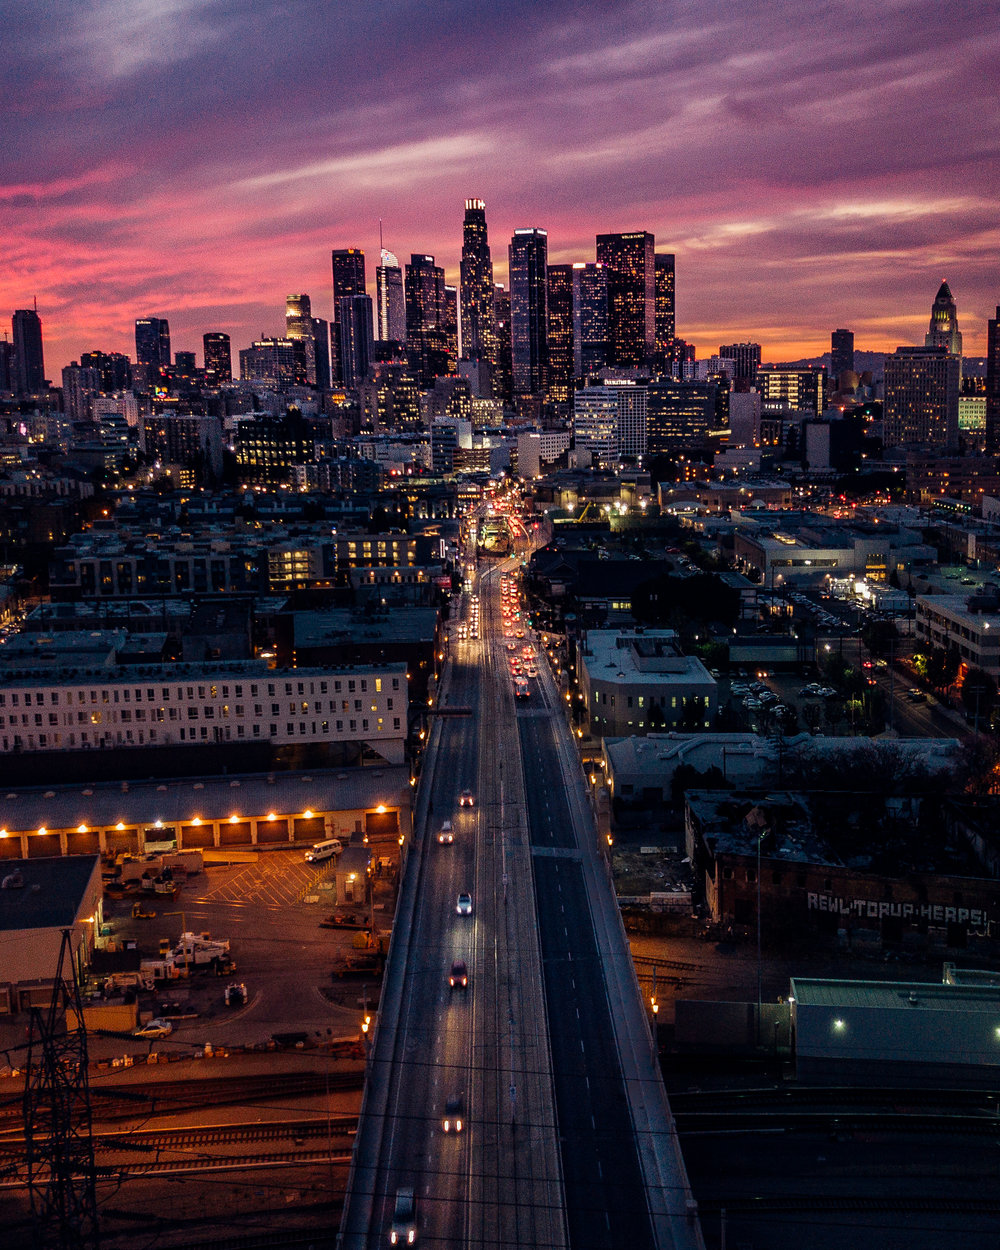 Los angeles city - By Mads Nordsveen